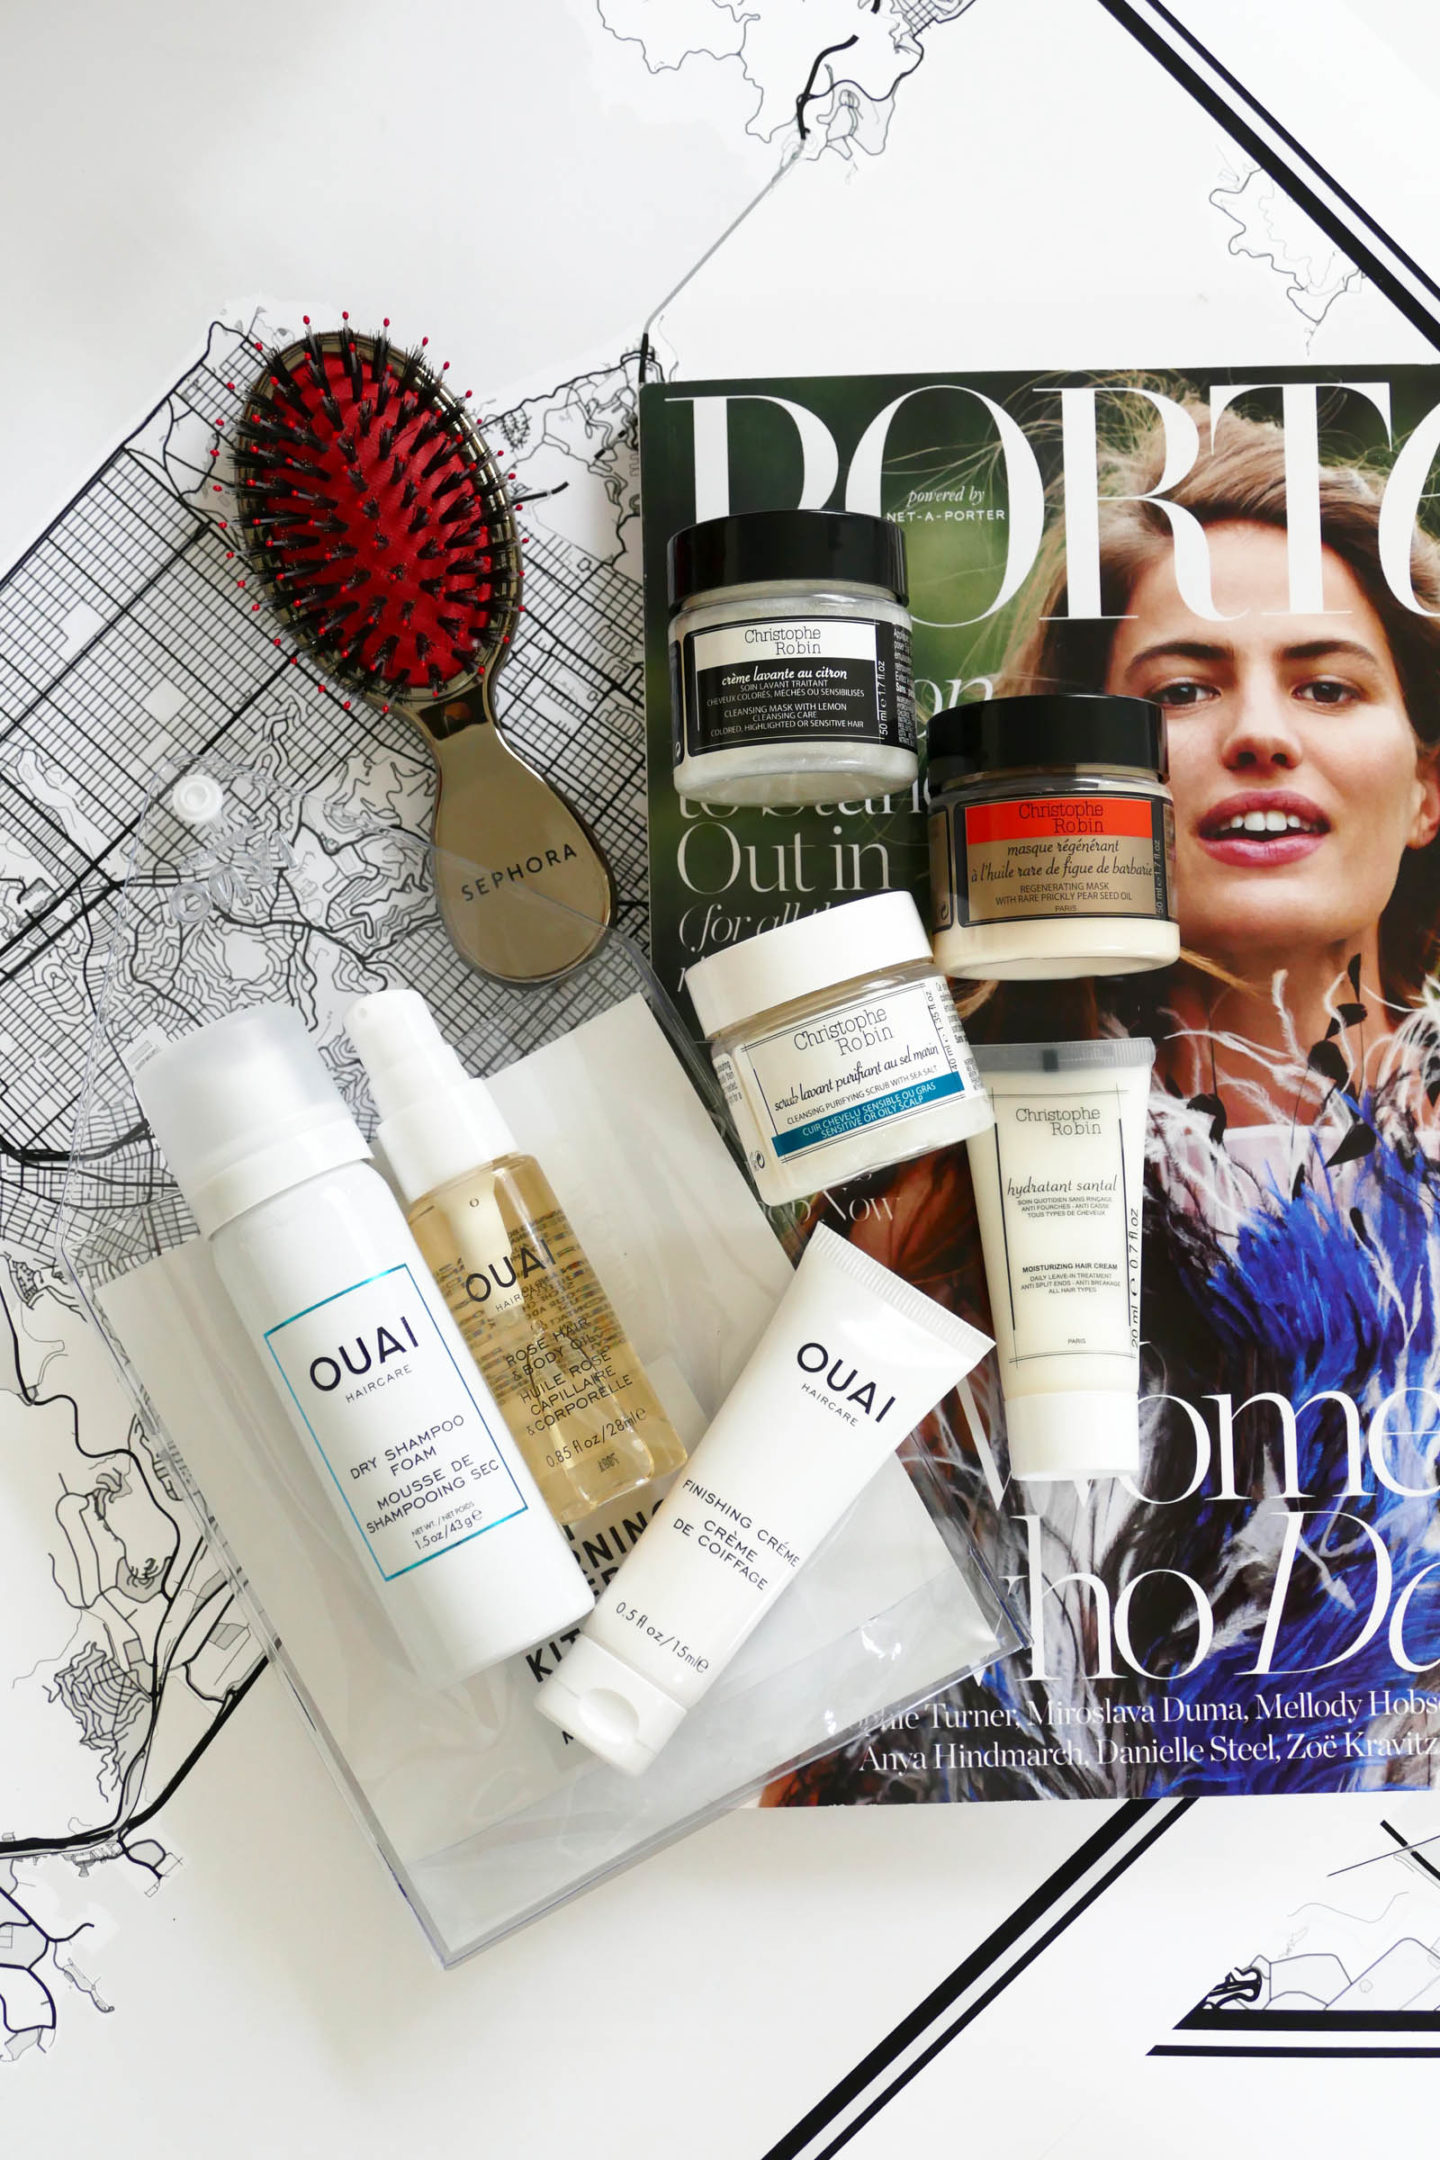 Ouai Morning After Set and Christophe Robin Minis Net-A-Porter   The Beauty Look Book